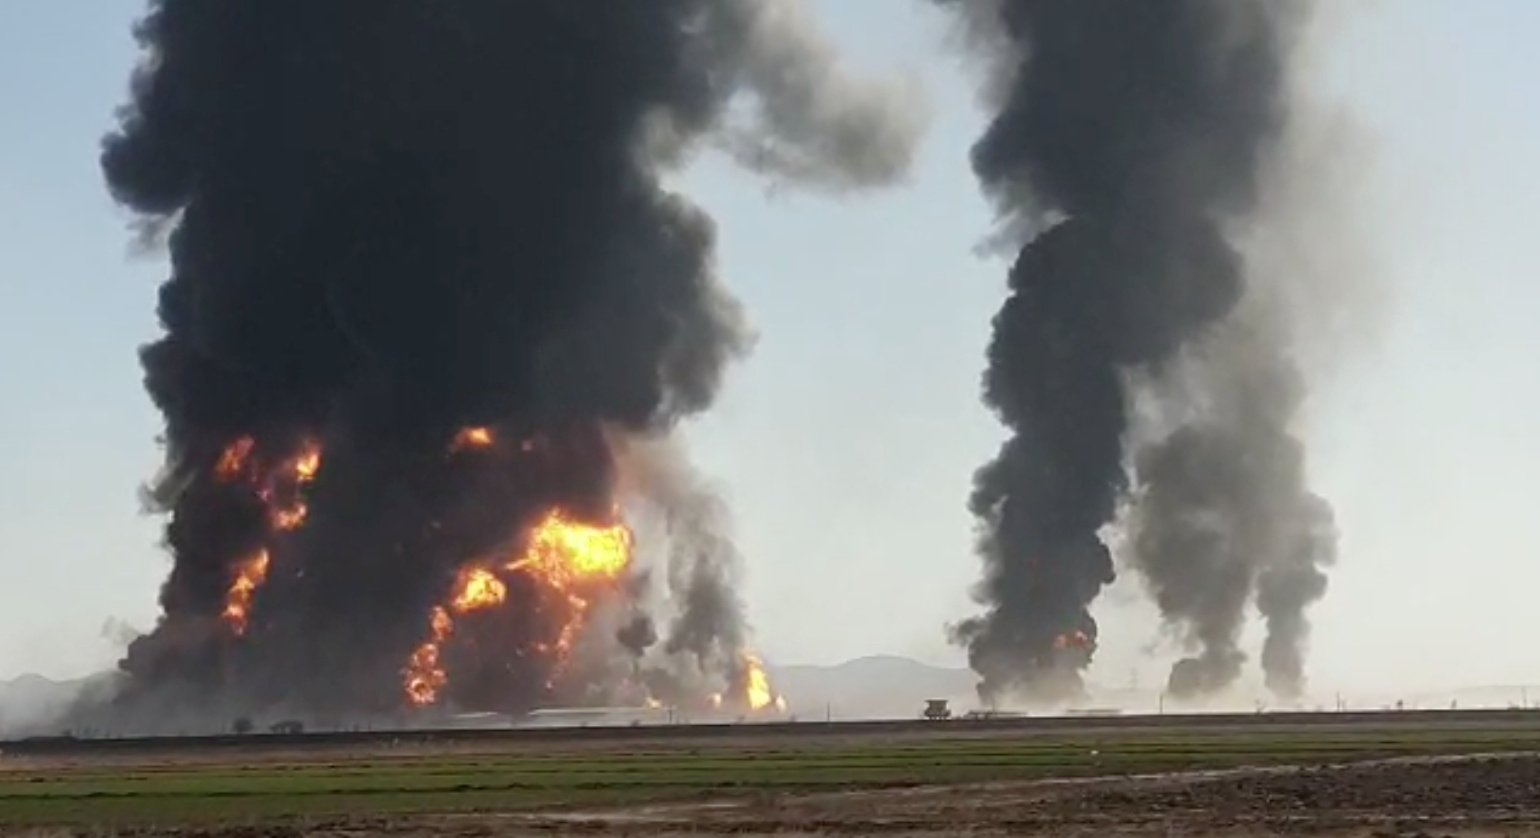 Fire and smoke rise from an explosion of a gas tanker in Herat, Afghanistan, Feb. 13, 2021. (Reuters)